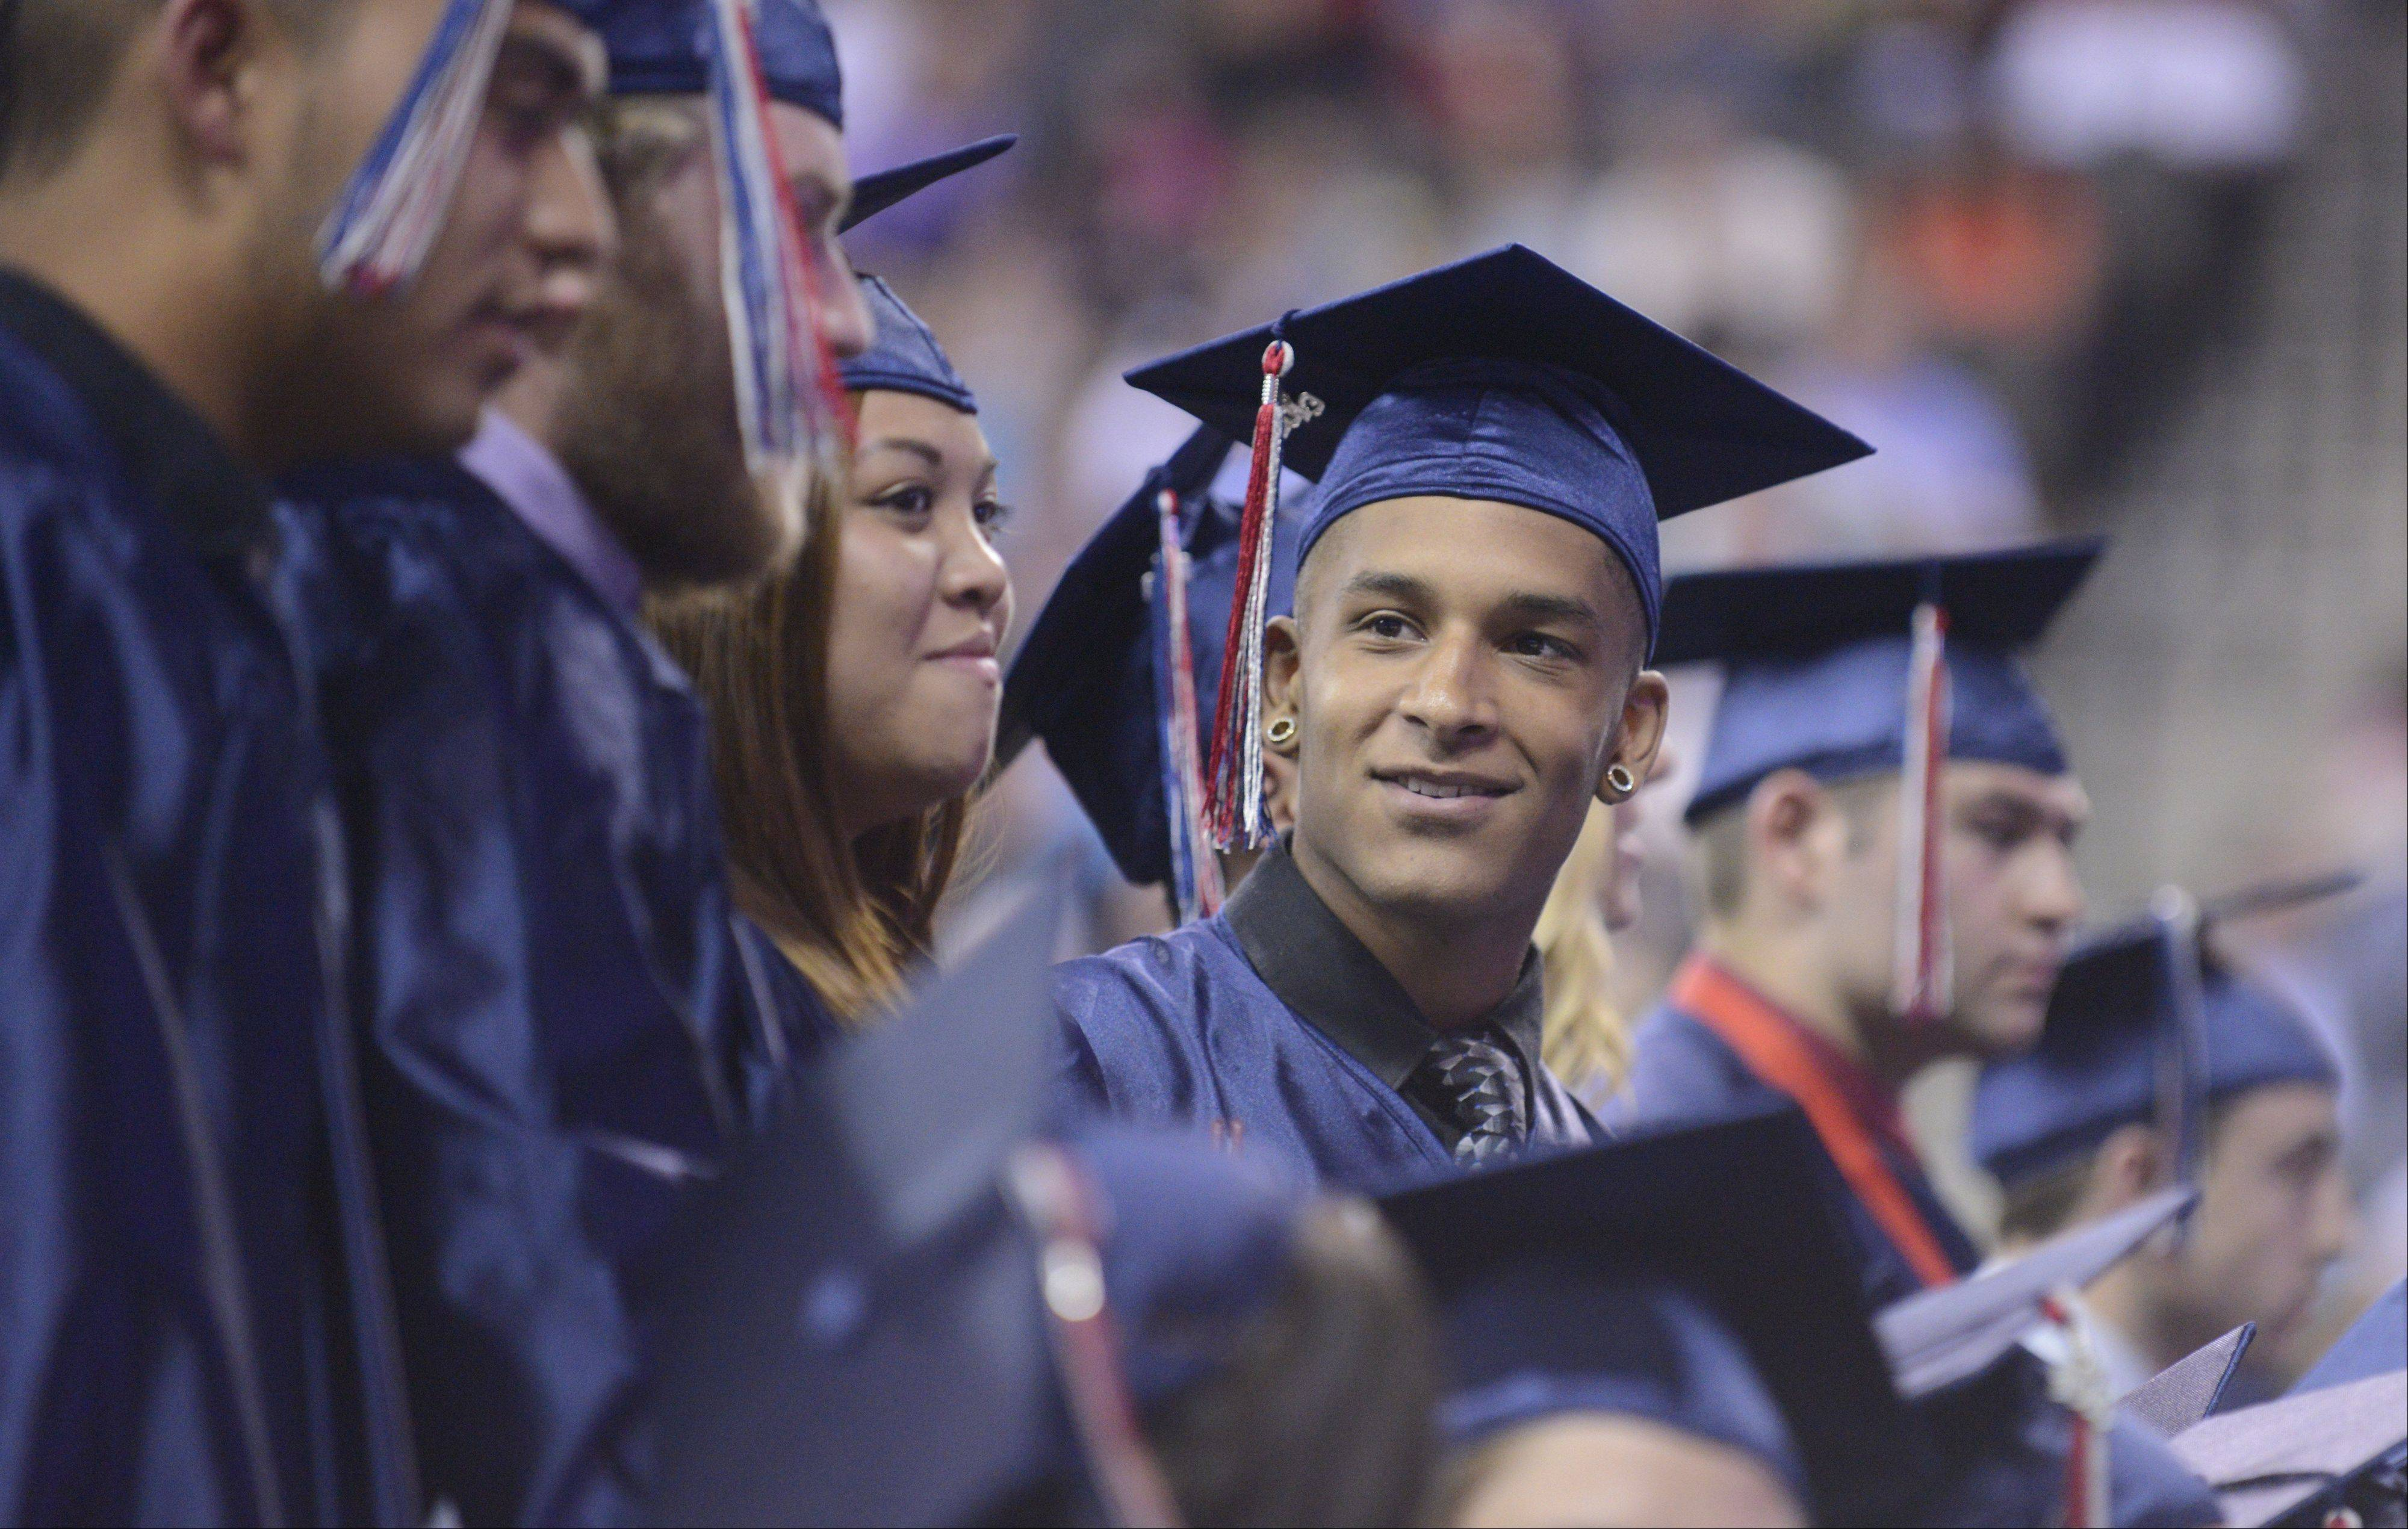 Images from the South Elgin High School commencement ceremony Saturday, May 25, 2013 at the Sears Centre in Hoffman Estates.